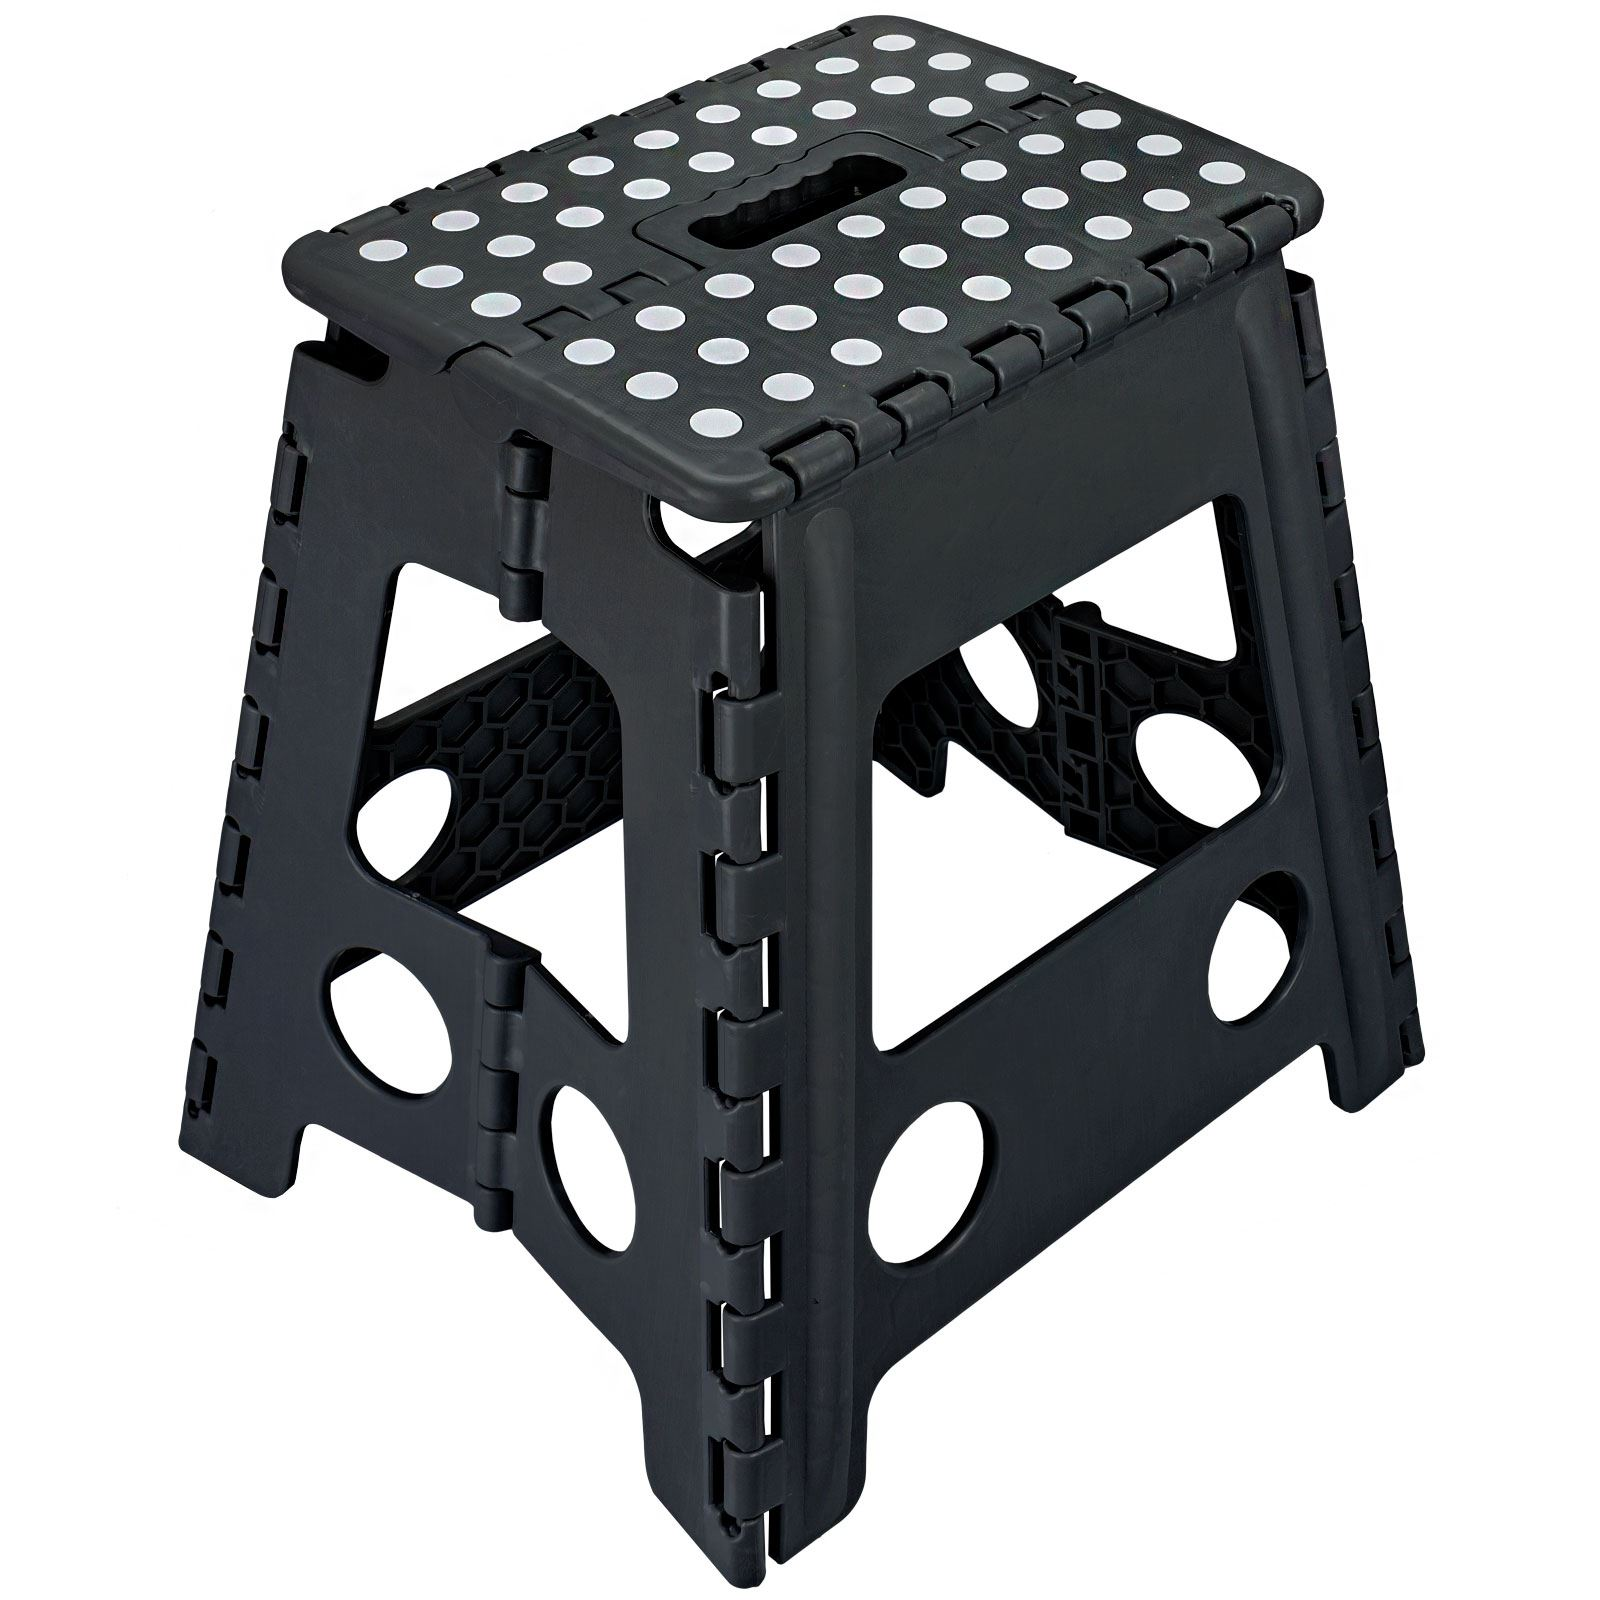 Folding Foot Step Stool Multi Purpose Plastic Home Kitchen